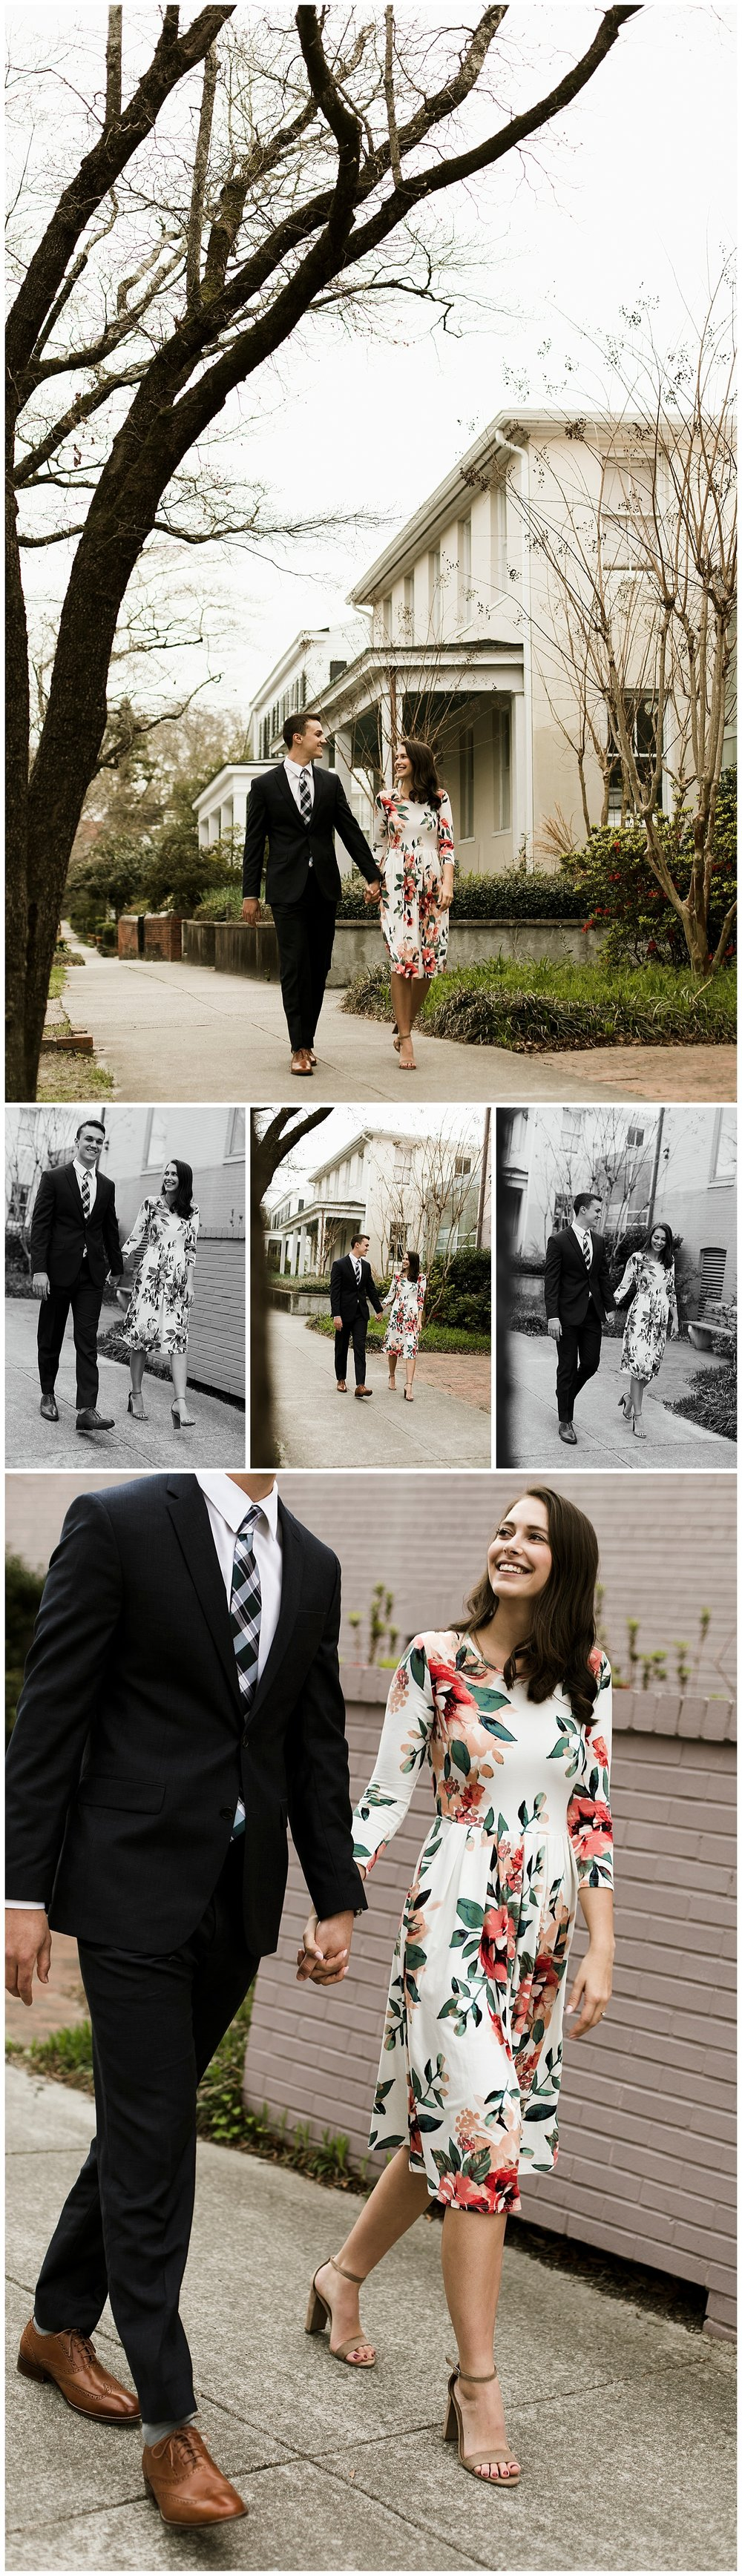 Engagement Session in Downtown Wilmington, North Carolina